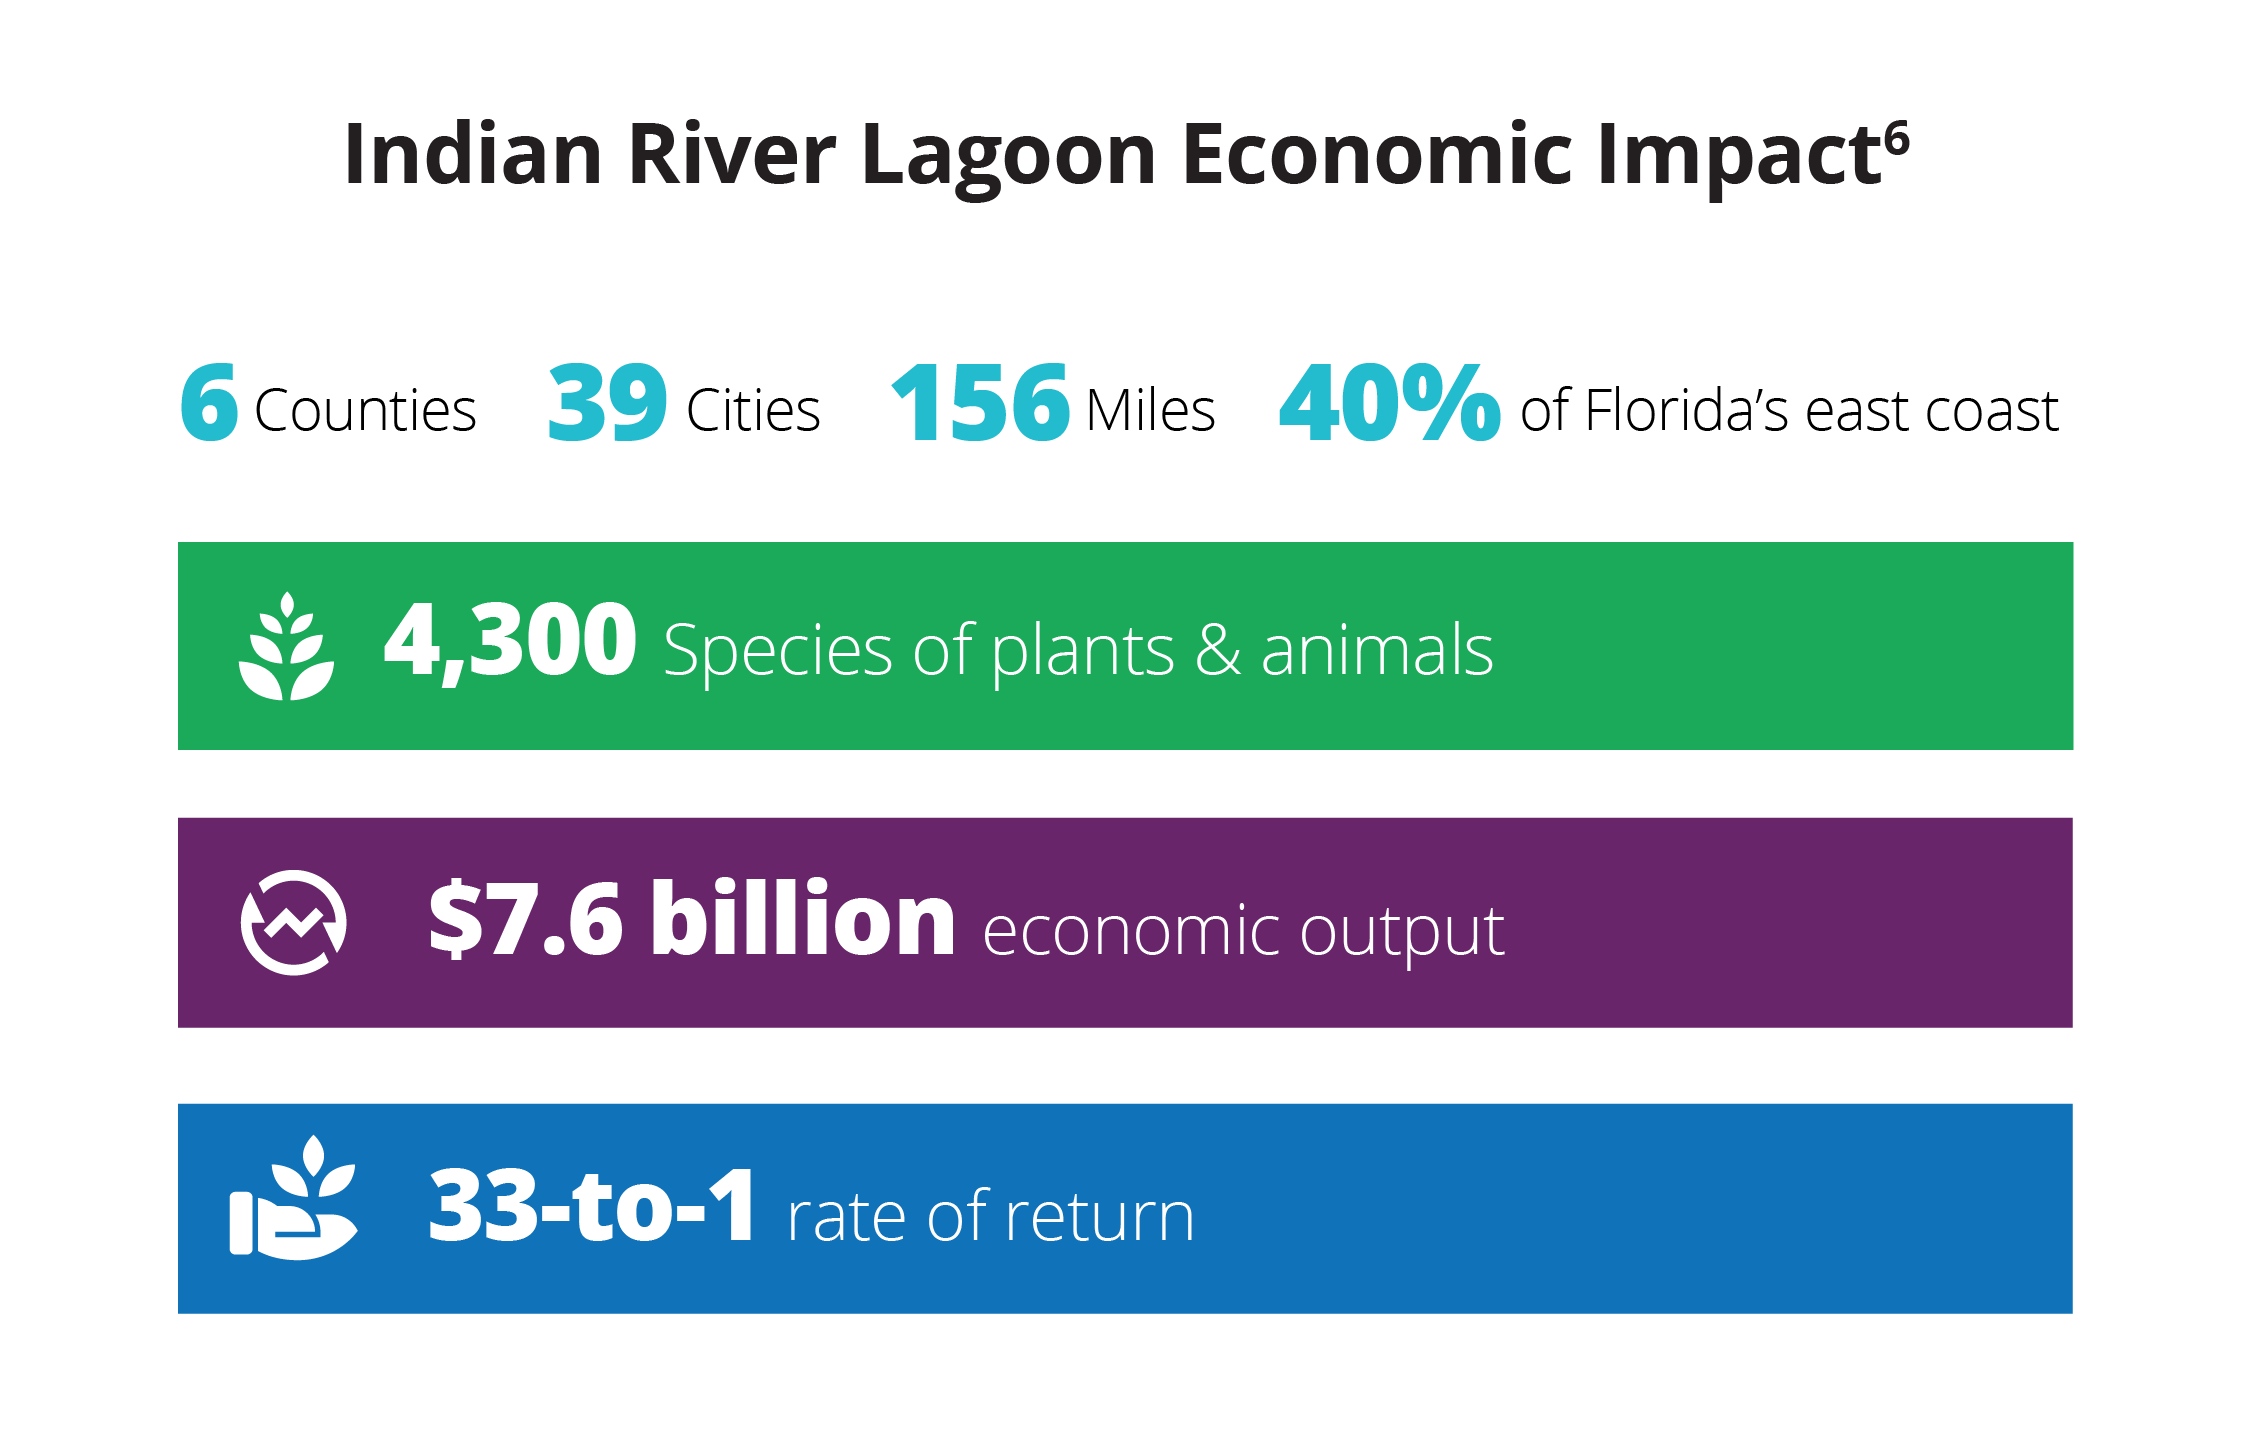 Indian River Lagoon economic impact